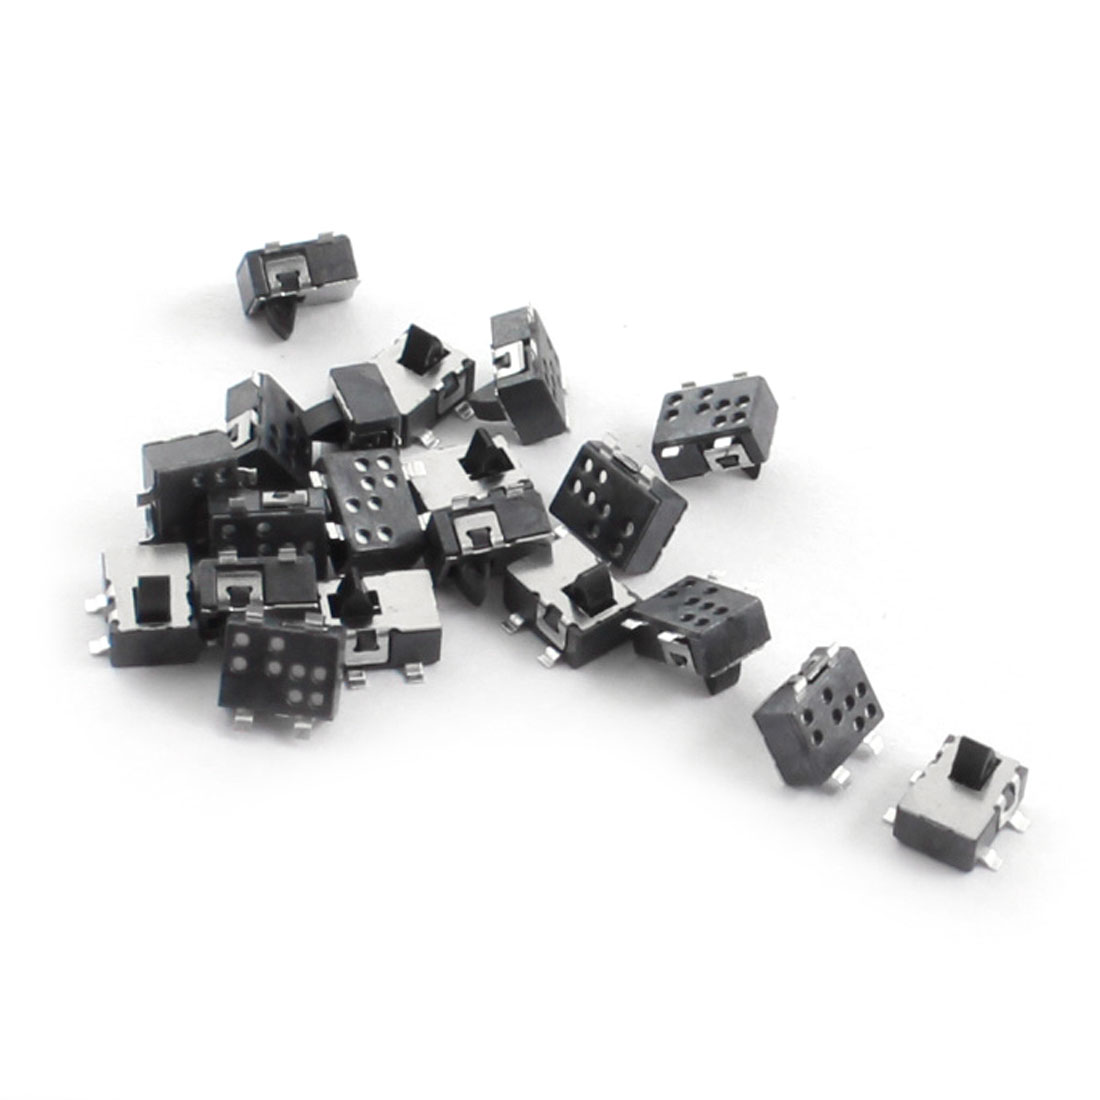 20 Pcs 4.7mm x 3.5mm Momentary 4-Pin SMD SMT Mount Type Pushbutton Control Mini Tact Switch